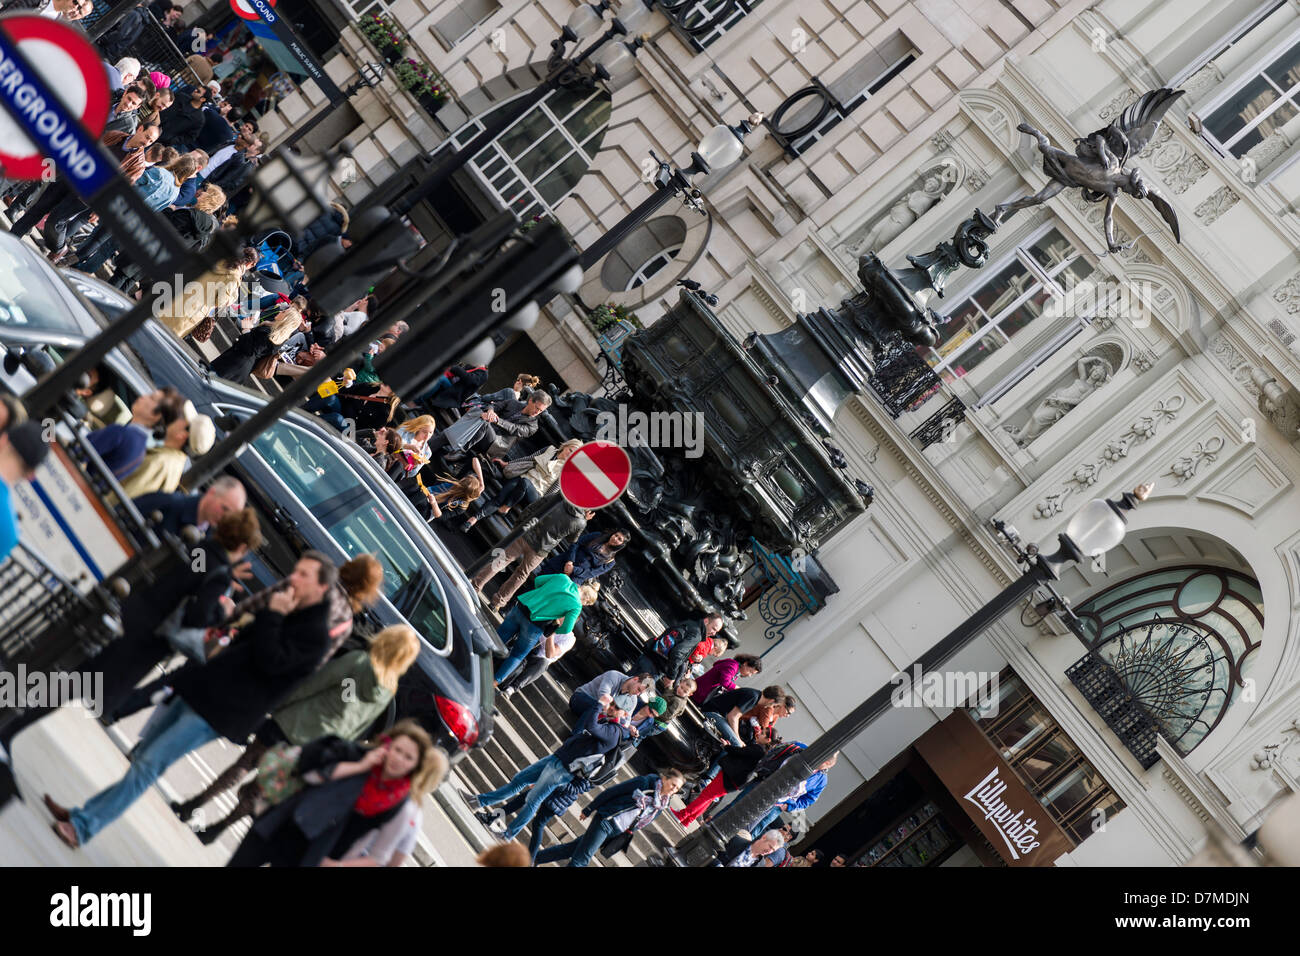 Piccadilly Circus, London - England - Stock Image